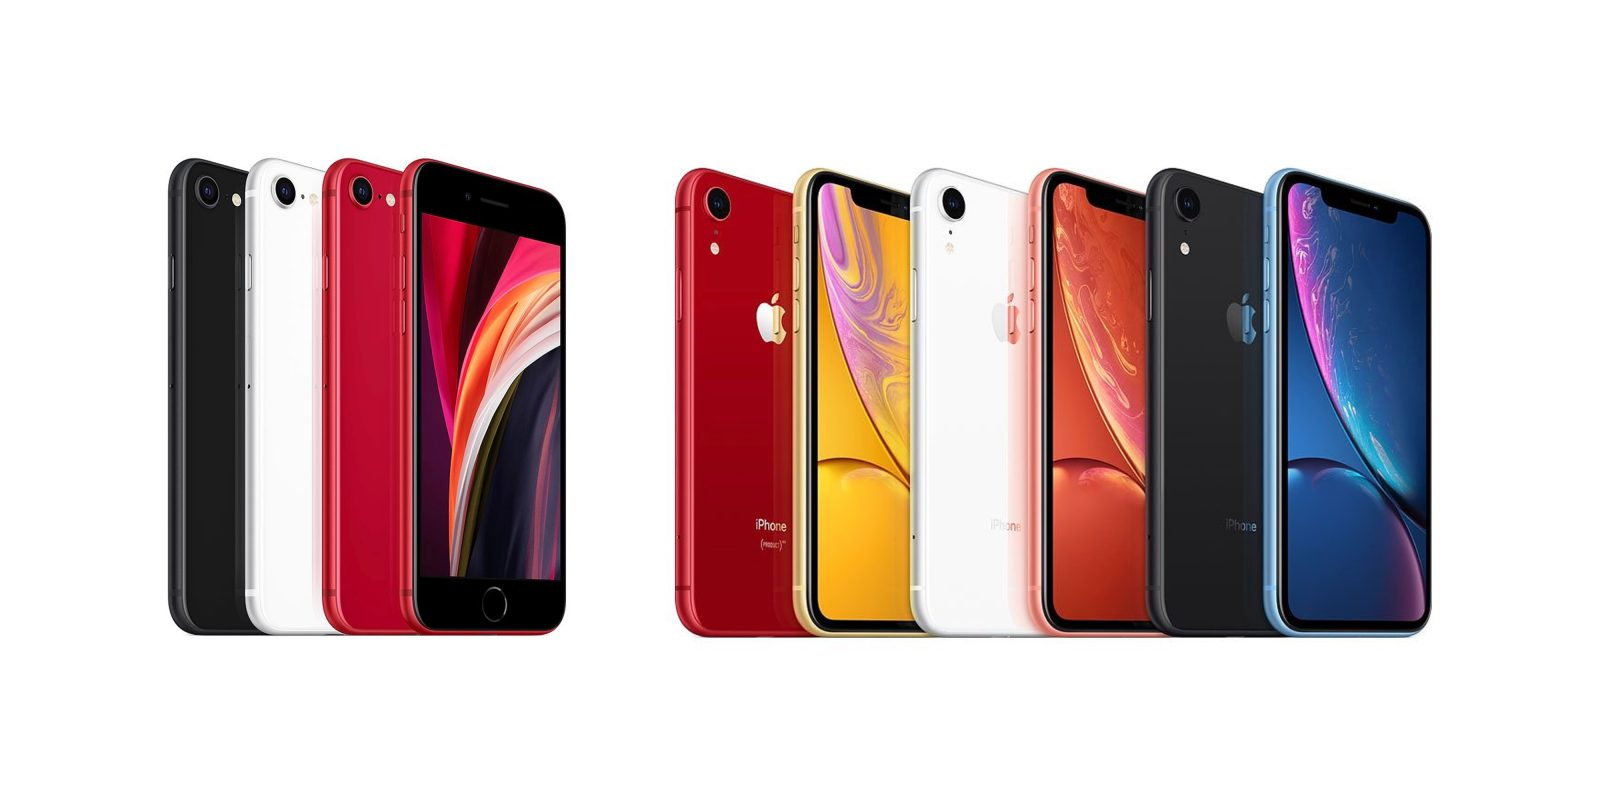 iPhone SE vs iPhone XR comparison: Which should you buy ...